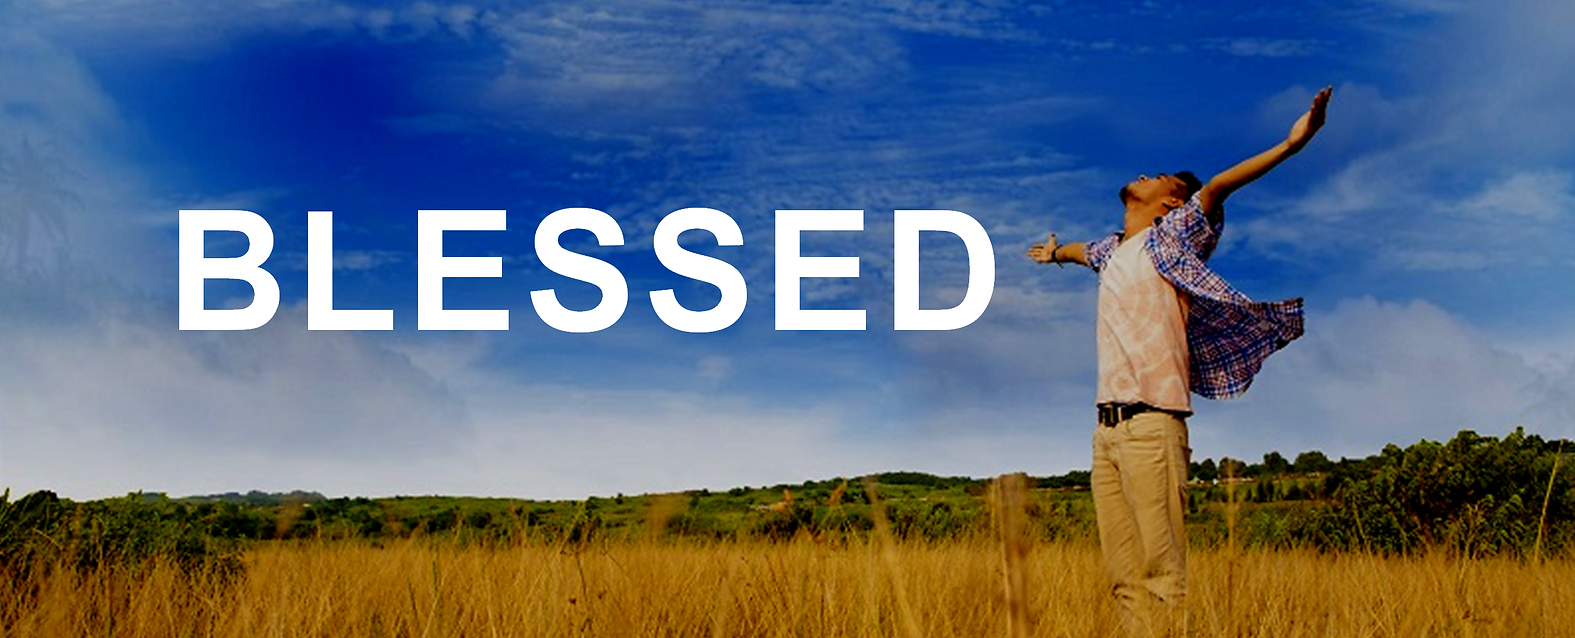 BLESSED Web Banner (6).png